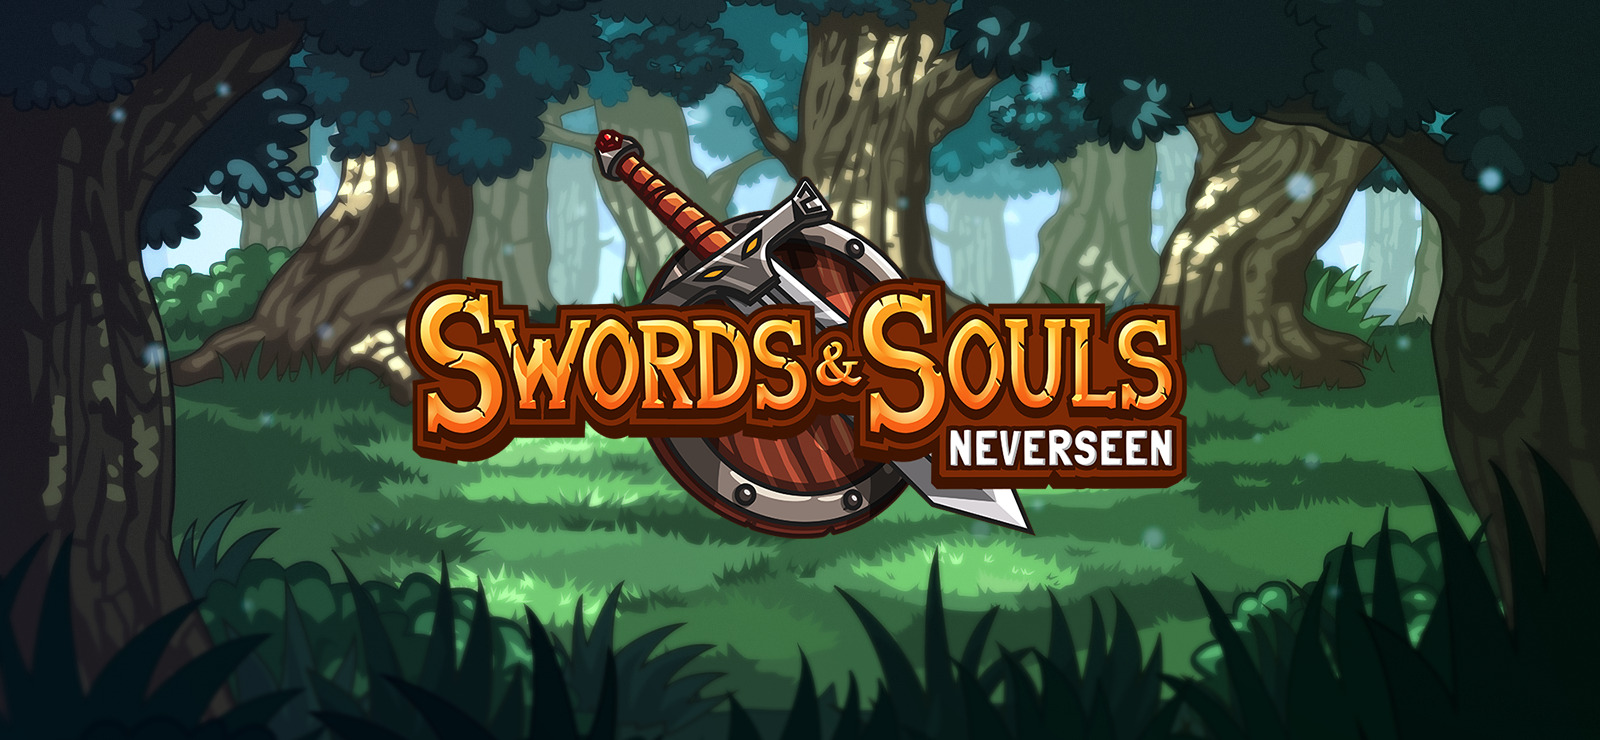 Swords & Souls Neverseen GOG скачать последнюю версию - Торрминаторр